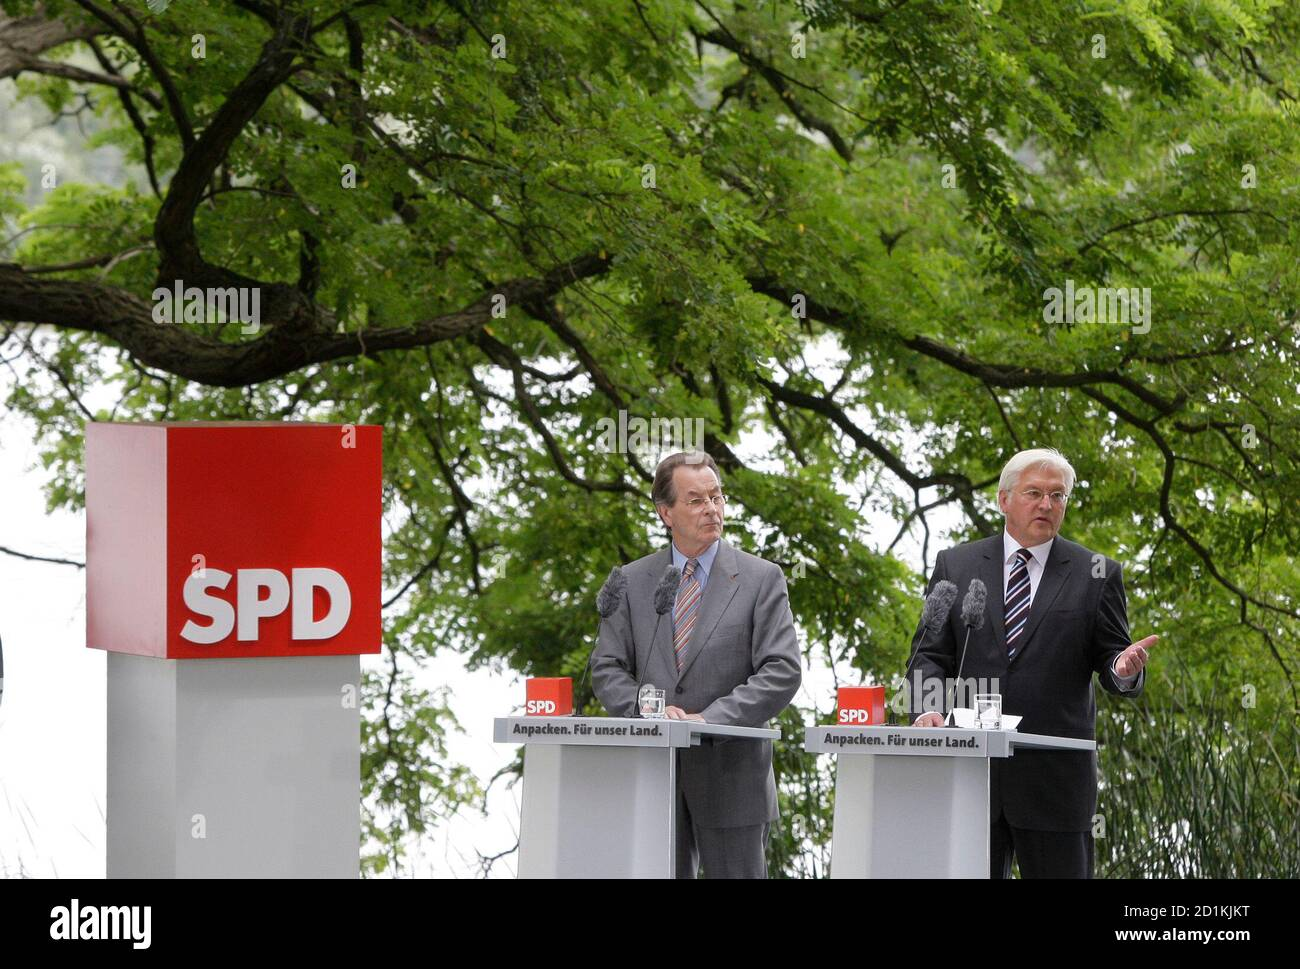 Frank-Walter Steinmeier (R), Germany's Social Democratic candidate for chancellor and SPD leader Franz Muentefering address the media in Potsdam, July 30, 2009.     REUTERS/Tobias Schwarz     (GERMANY POLITICS ELECTIONS) Foto de stock